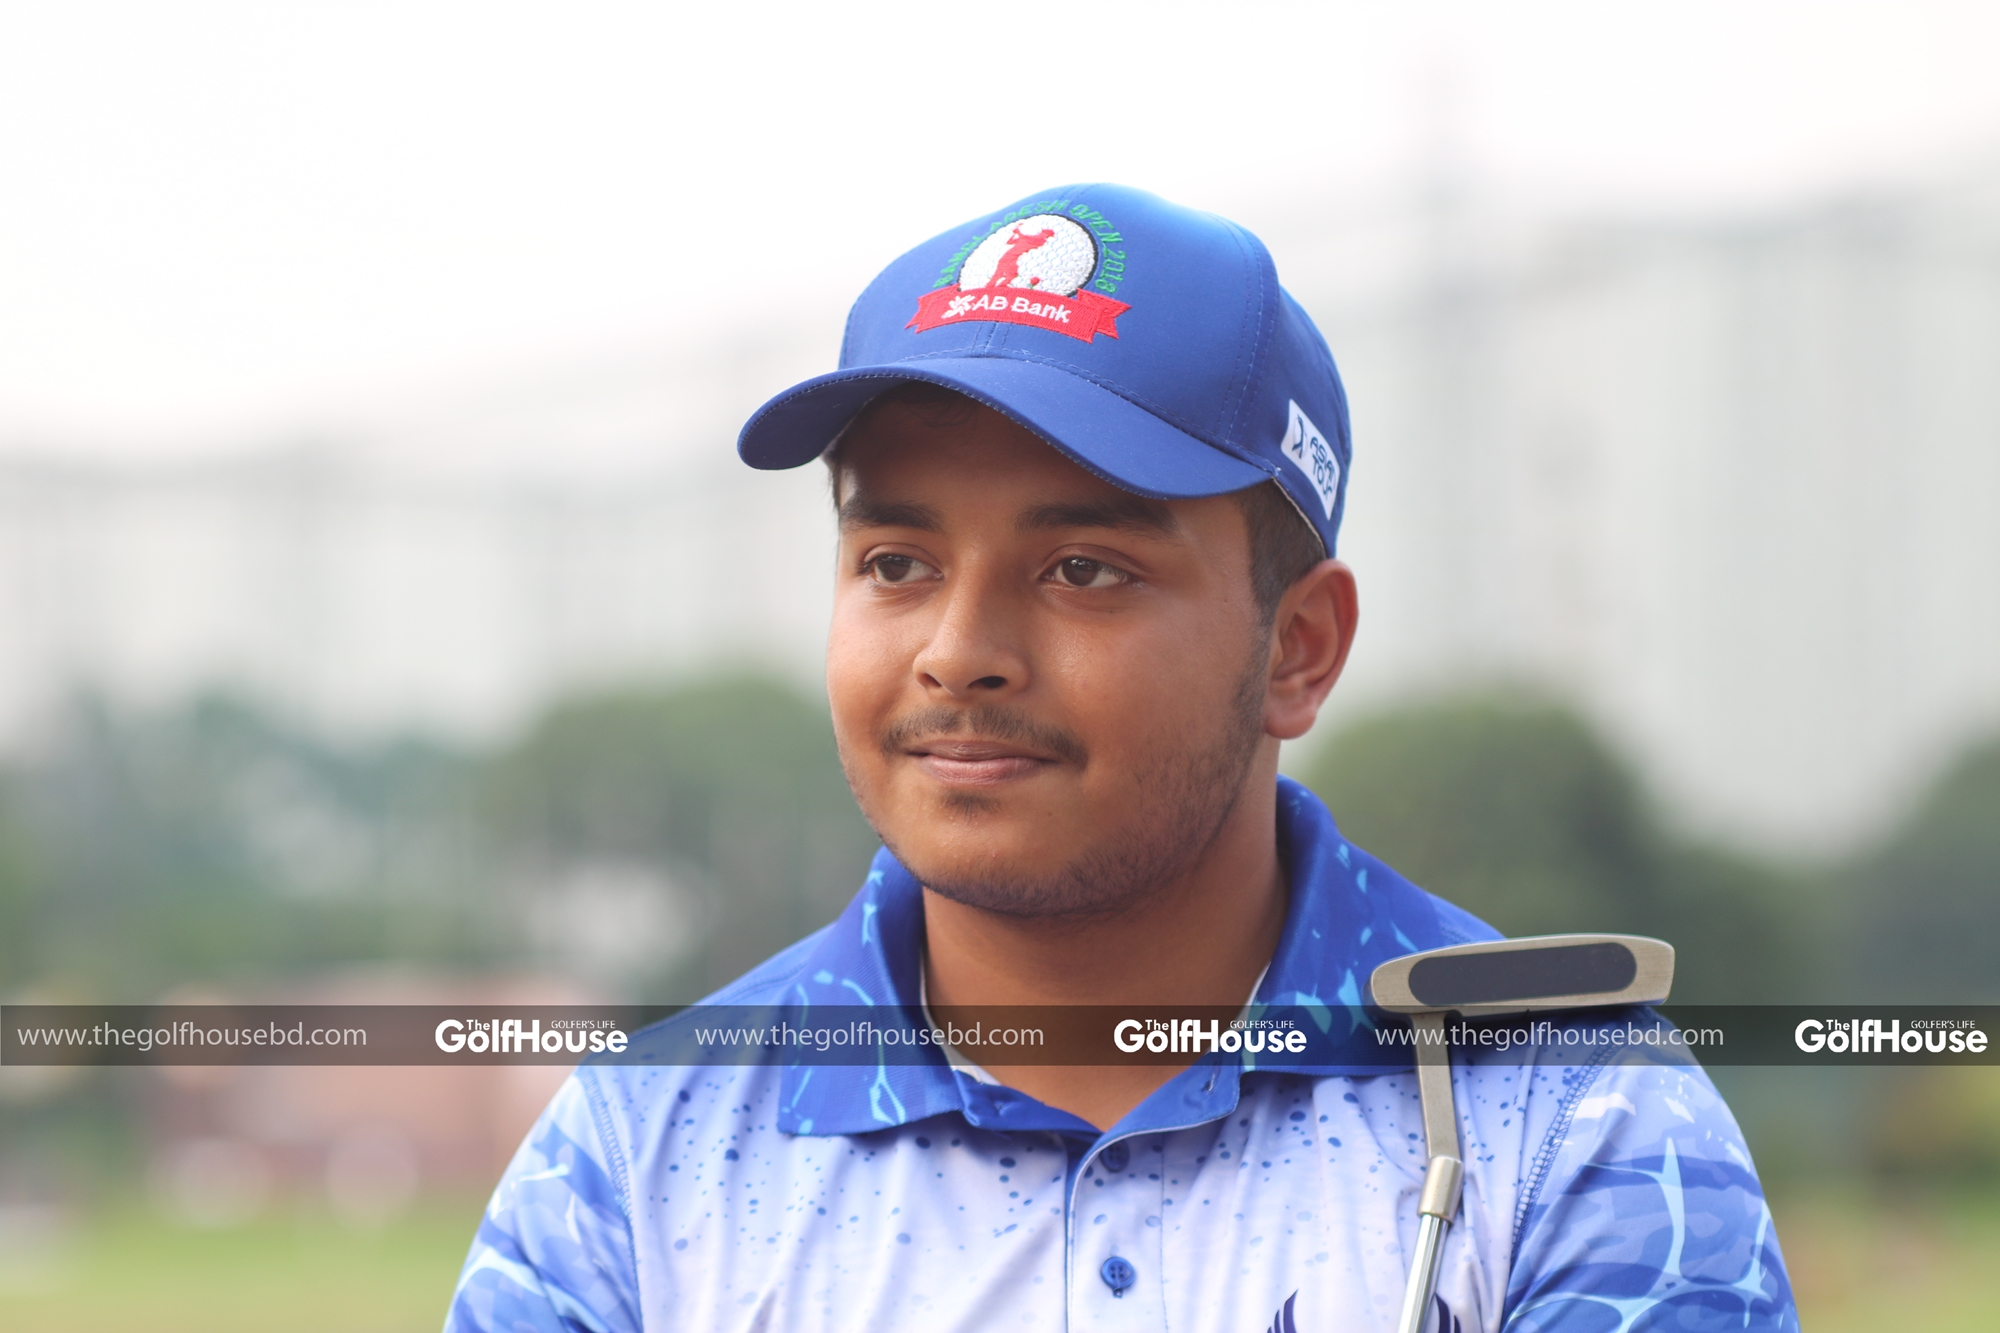 Samaul Islam is an amateur golfer at the Kurmitola Golf Club. Like many other amateur golfers, Samaul was introduced to the game by his father at a very early age and took an instant liking to the game and the other aspects that golf brings with it.